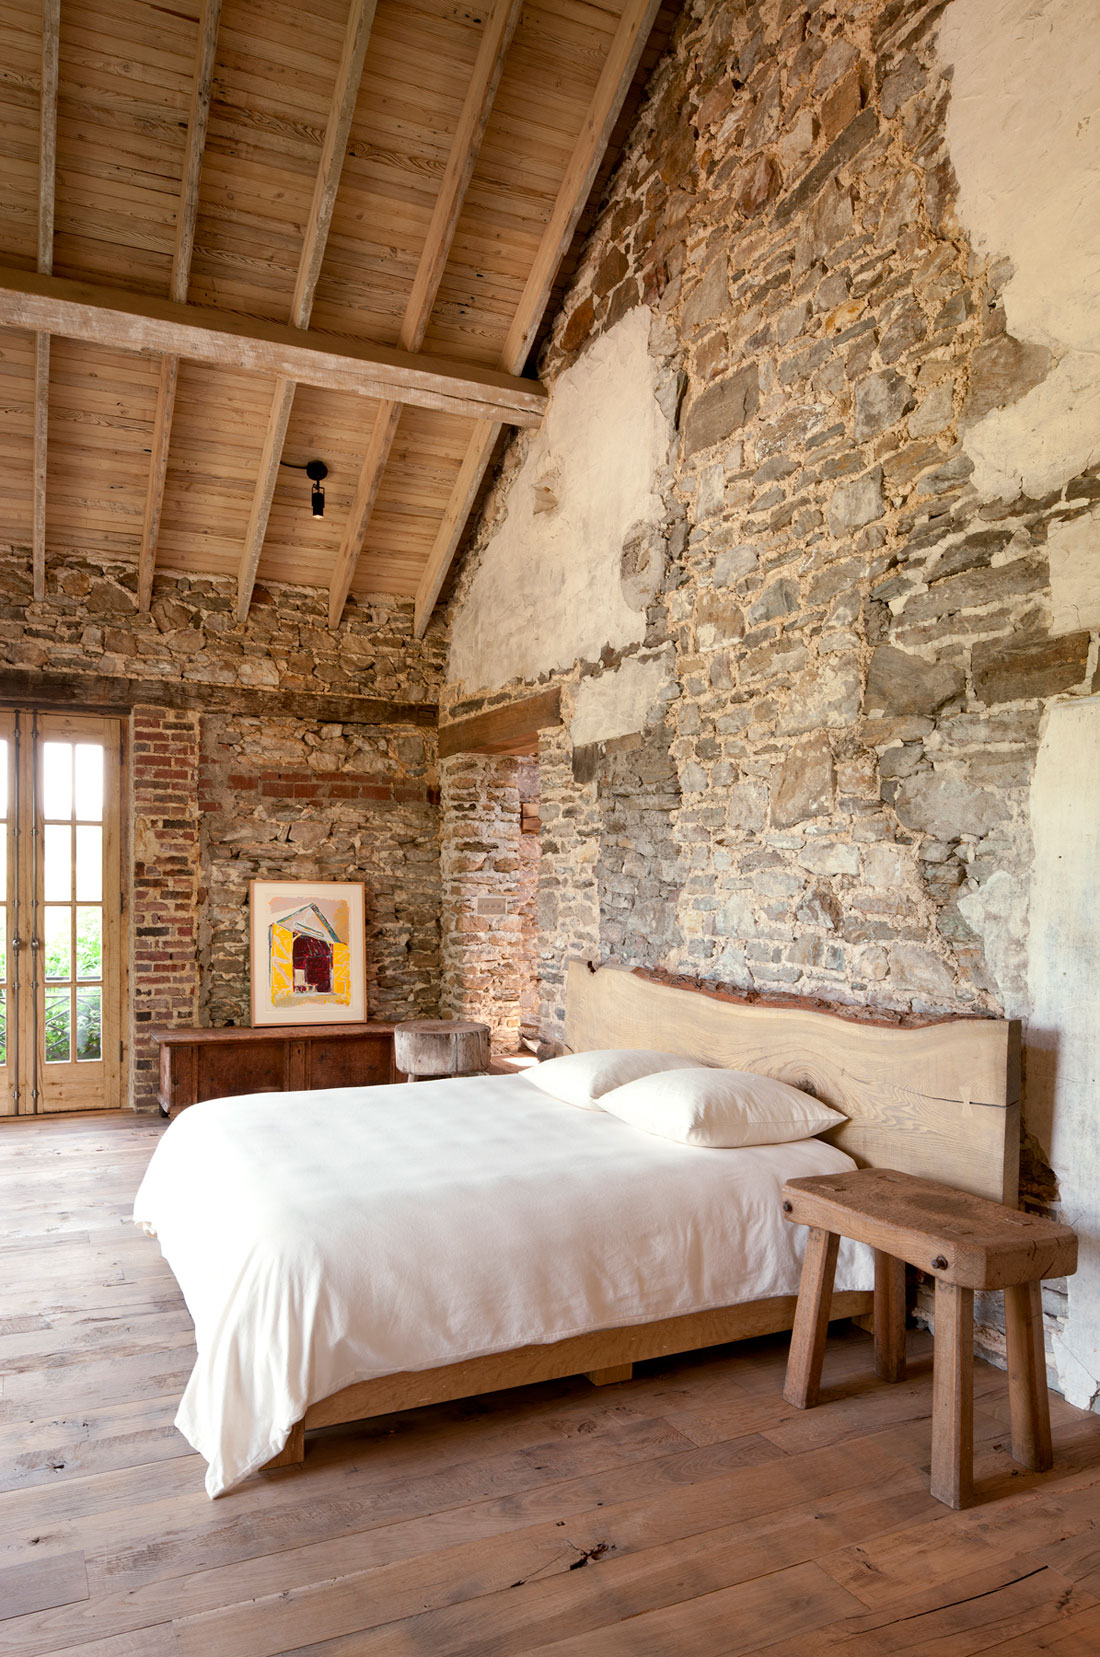 40 Rustic Interior Design For Your Home - The WoW Style